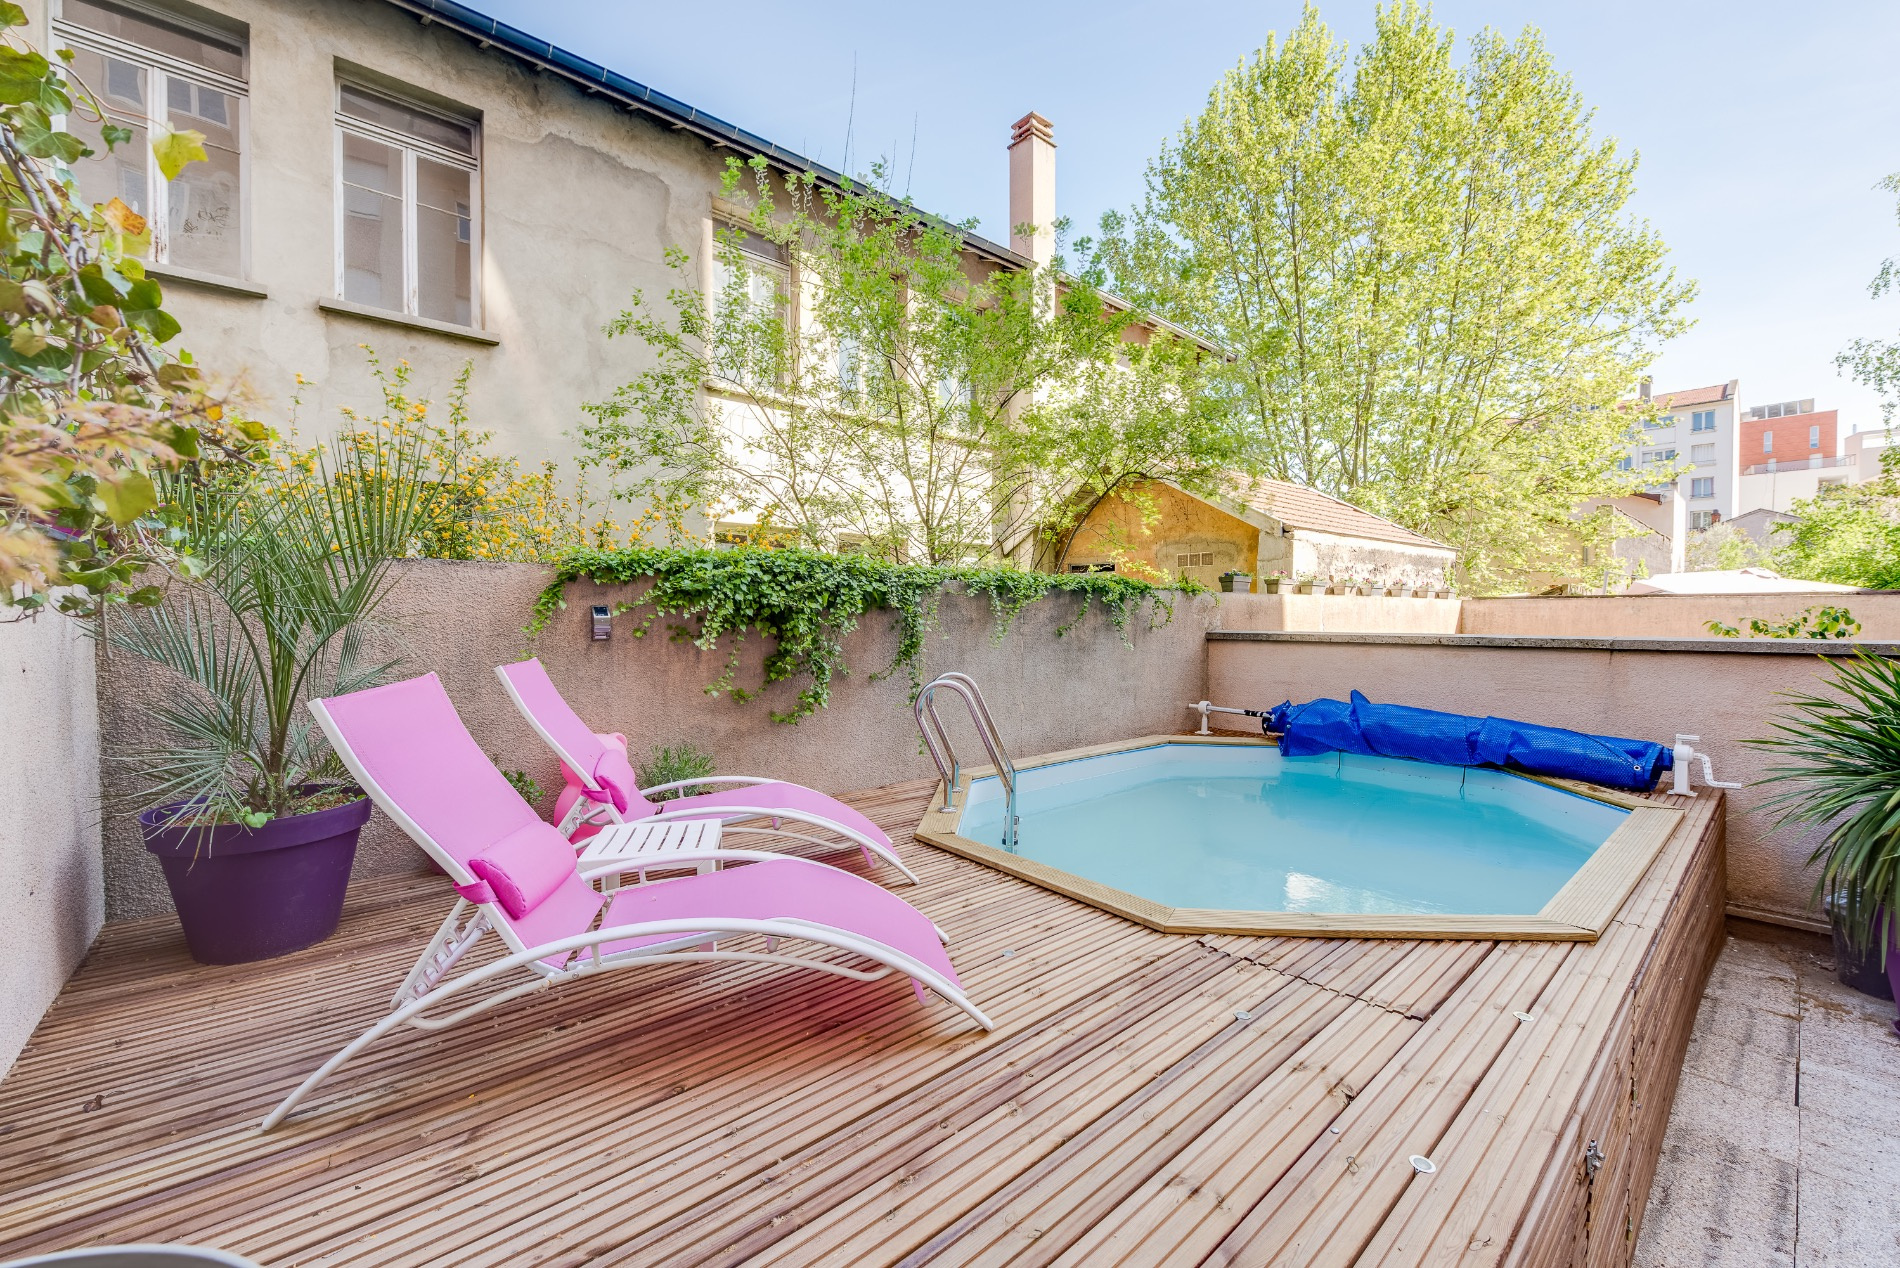 Vente appartement t3 piscine privee rare villeurbanne for Piscine villeurbanne